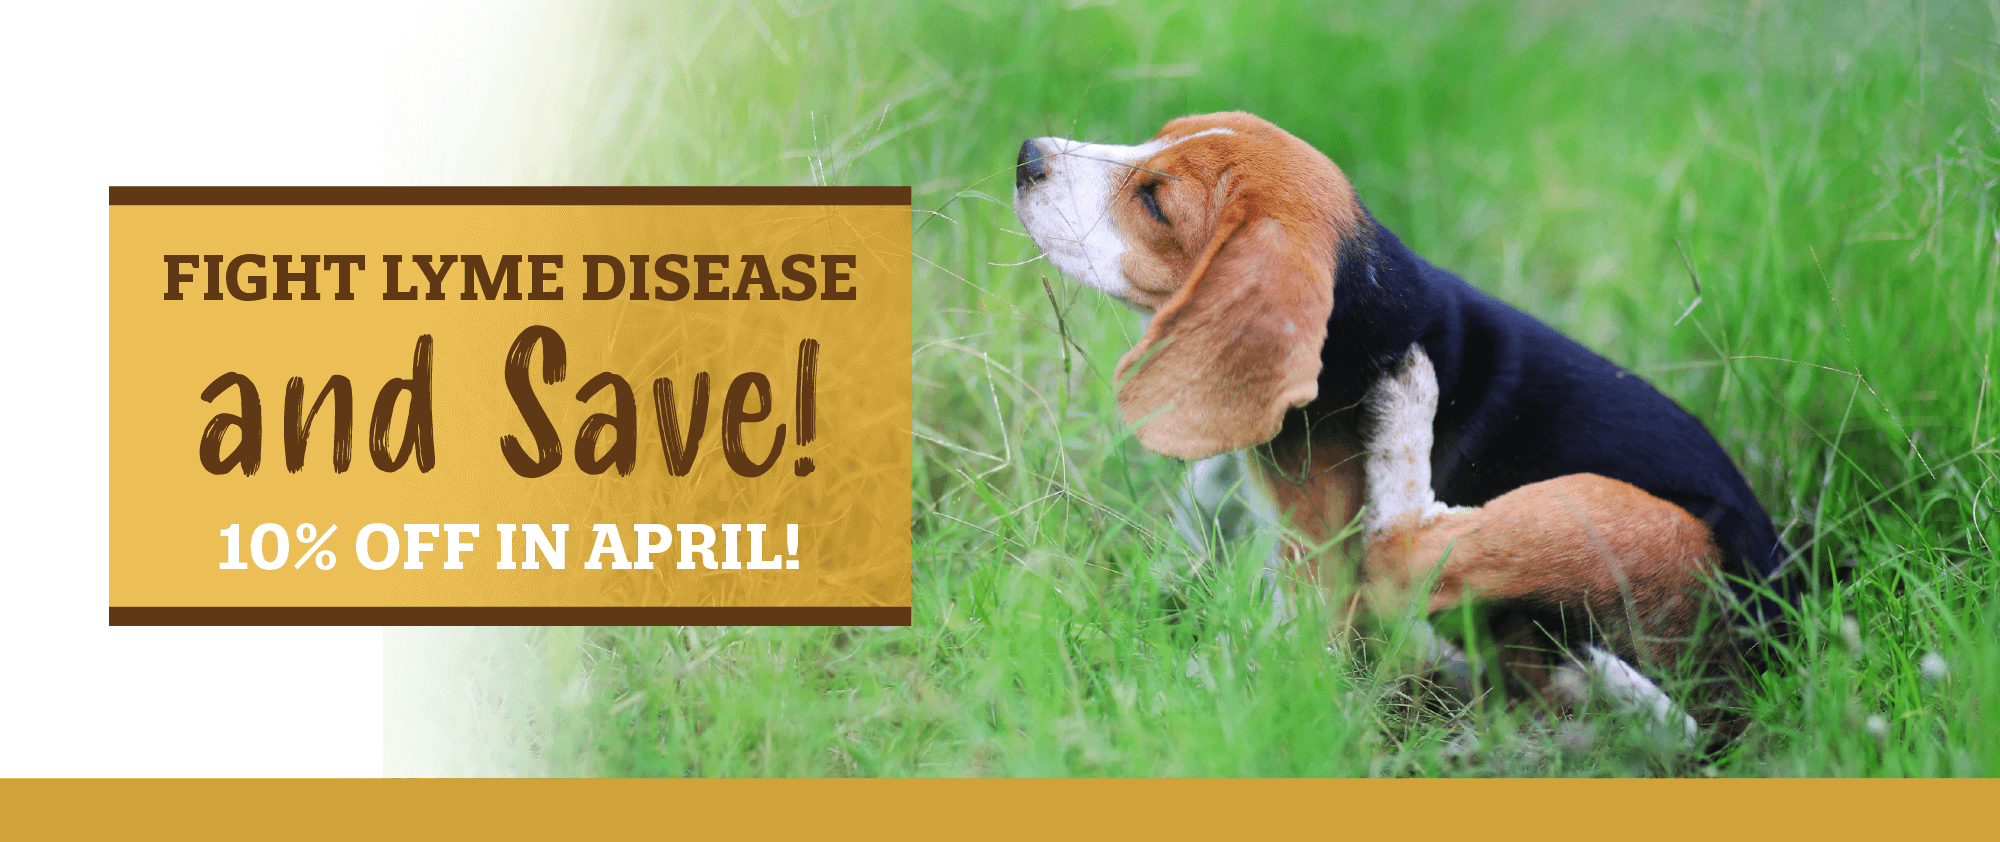 Fight Lyme Disease and Save!